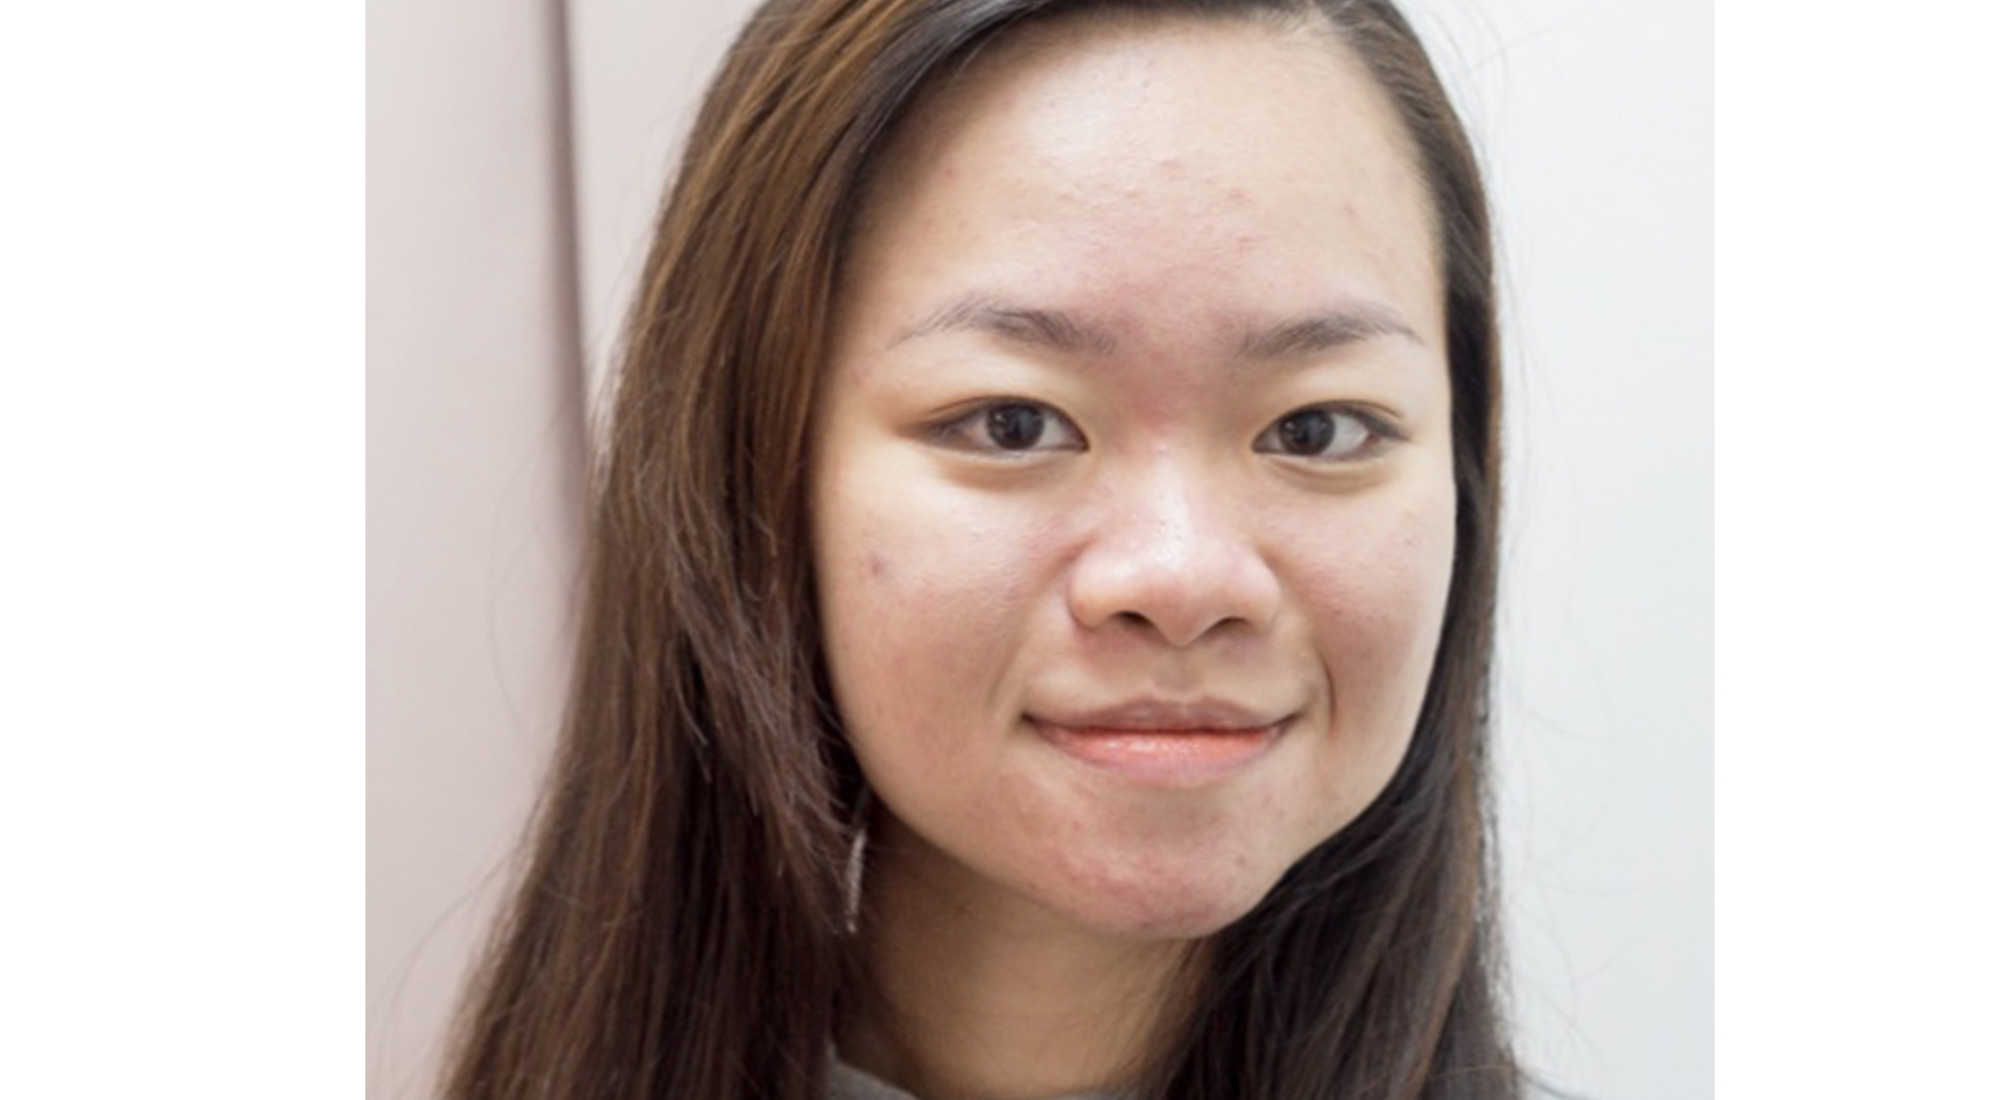 Pimples Cleared After 2 Sessions of Facial at Apple Queen Beauty